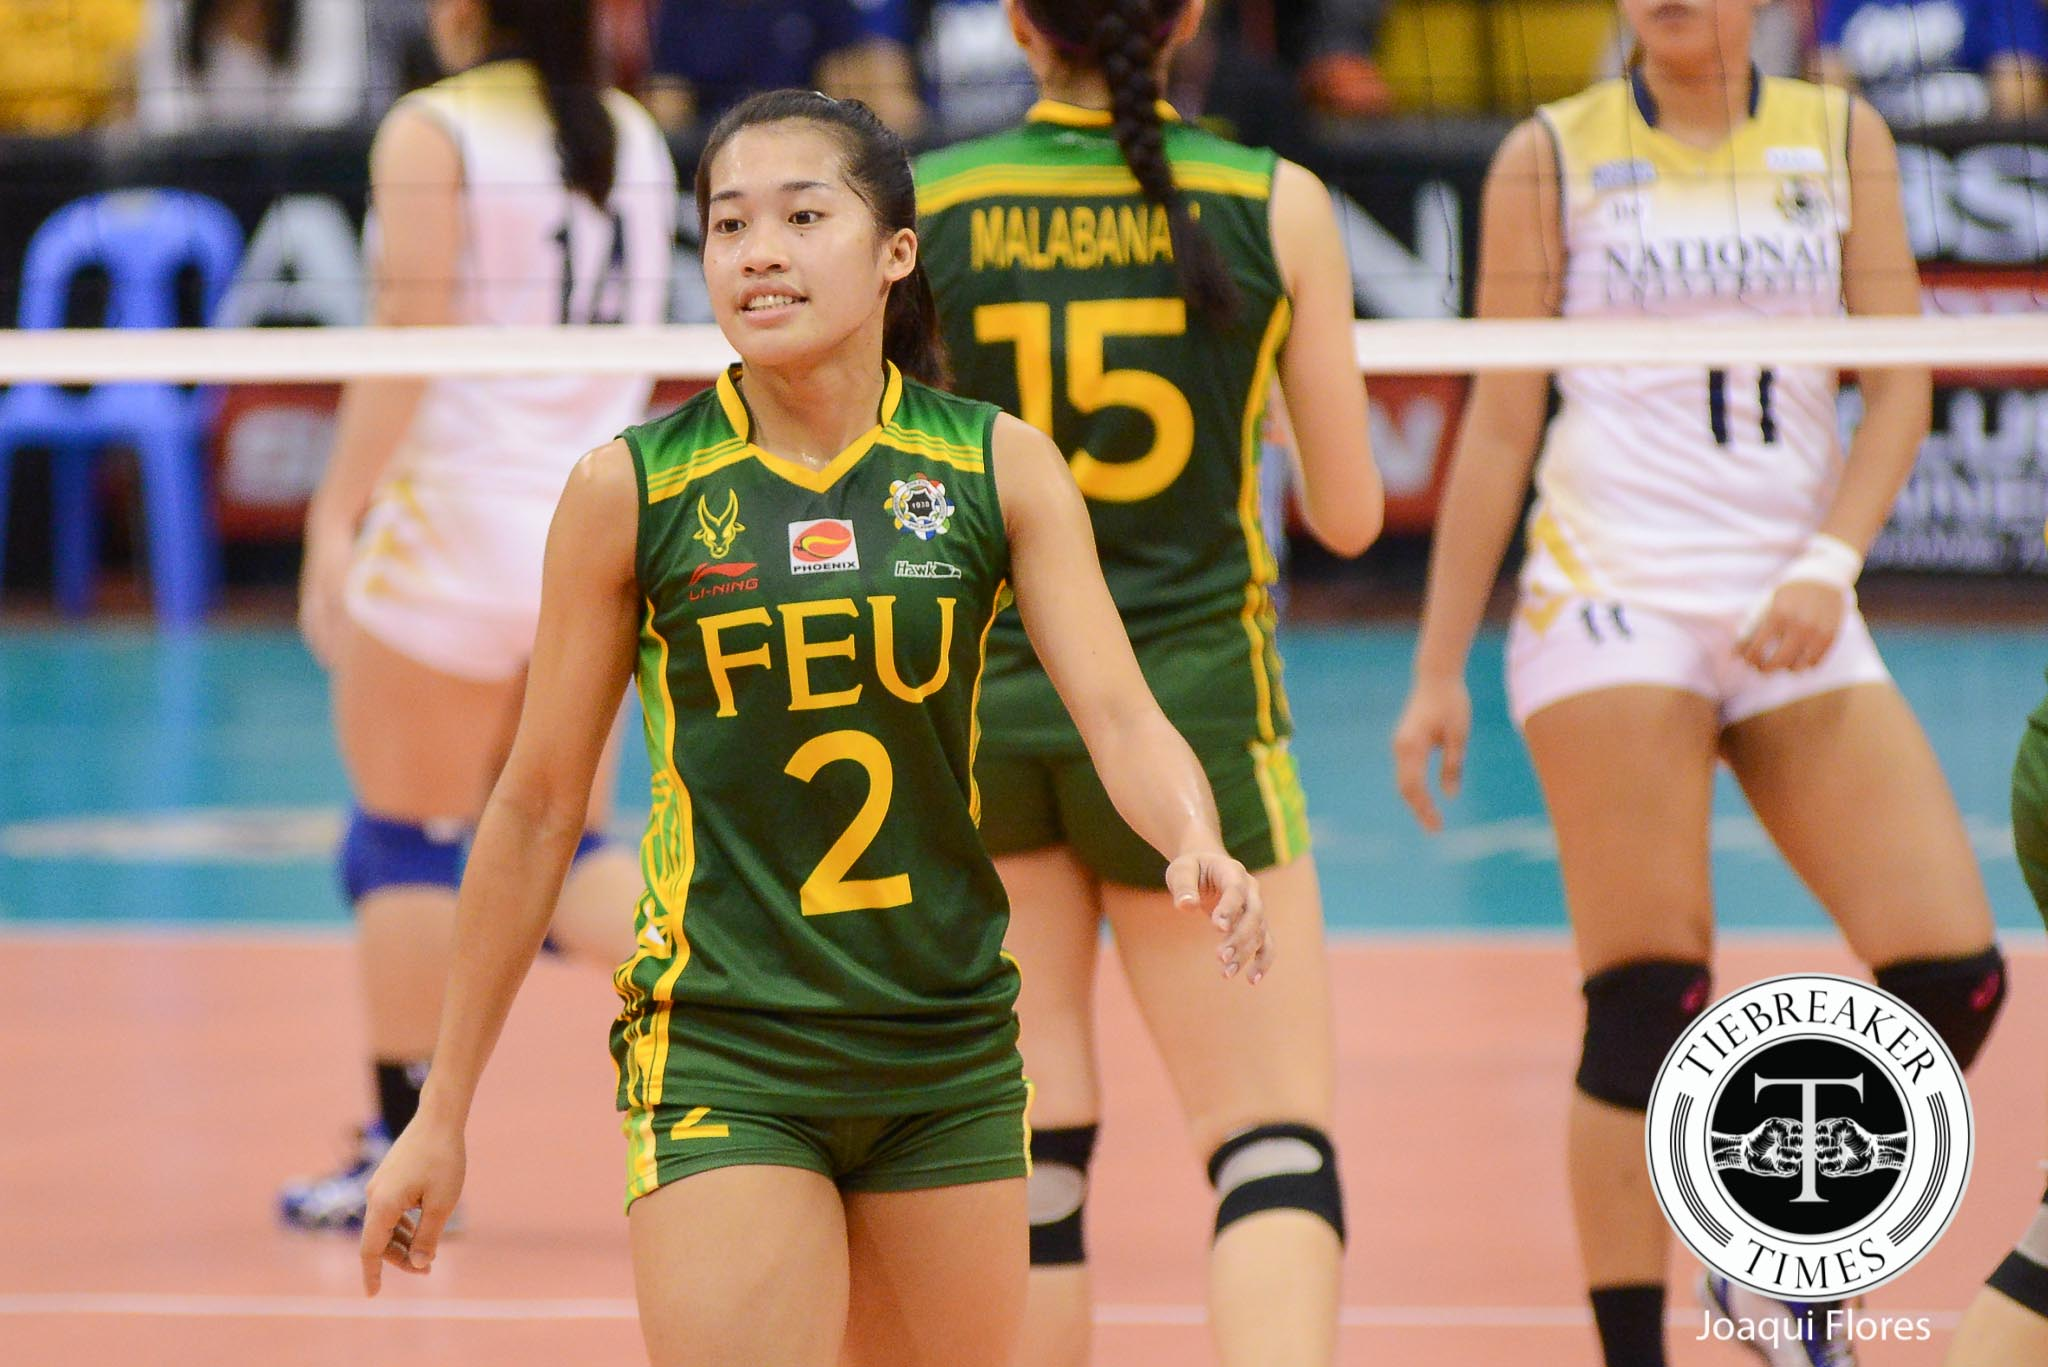 Philippine Sports News - Tiebreaker Times Pons would have preferred sweep over career-high against NU FEU News UAAP Volleyball  UAAP Season 78 Women's Volleyball UAAP Season 78 FEU Women's Volleyball Bernadeth Pons